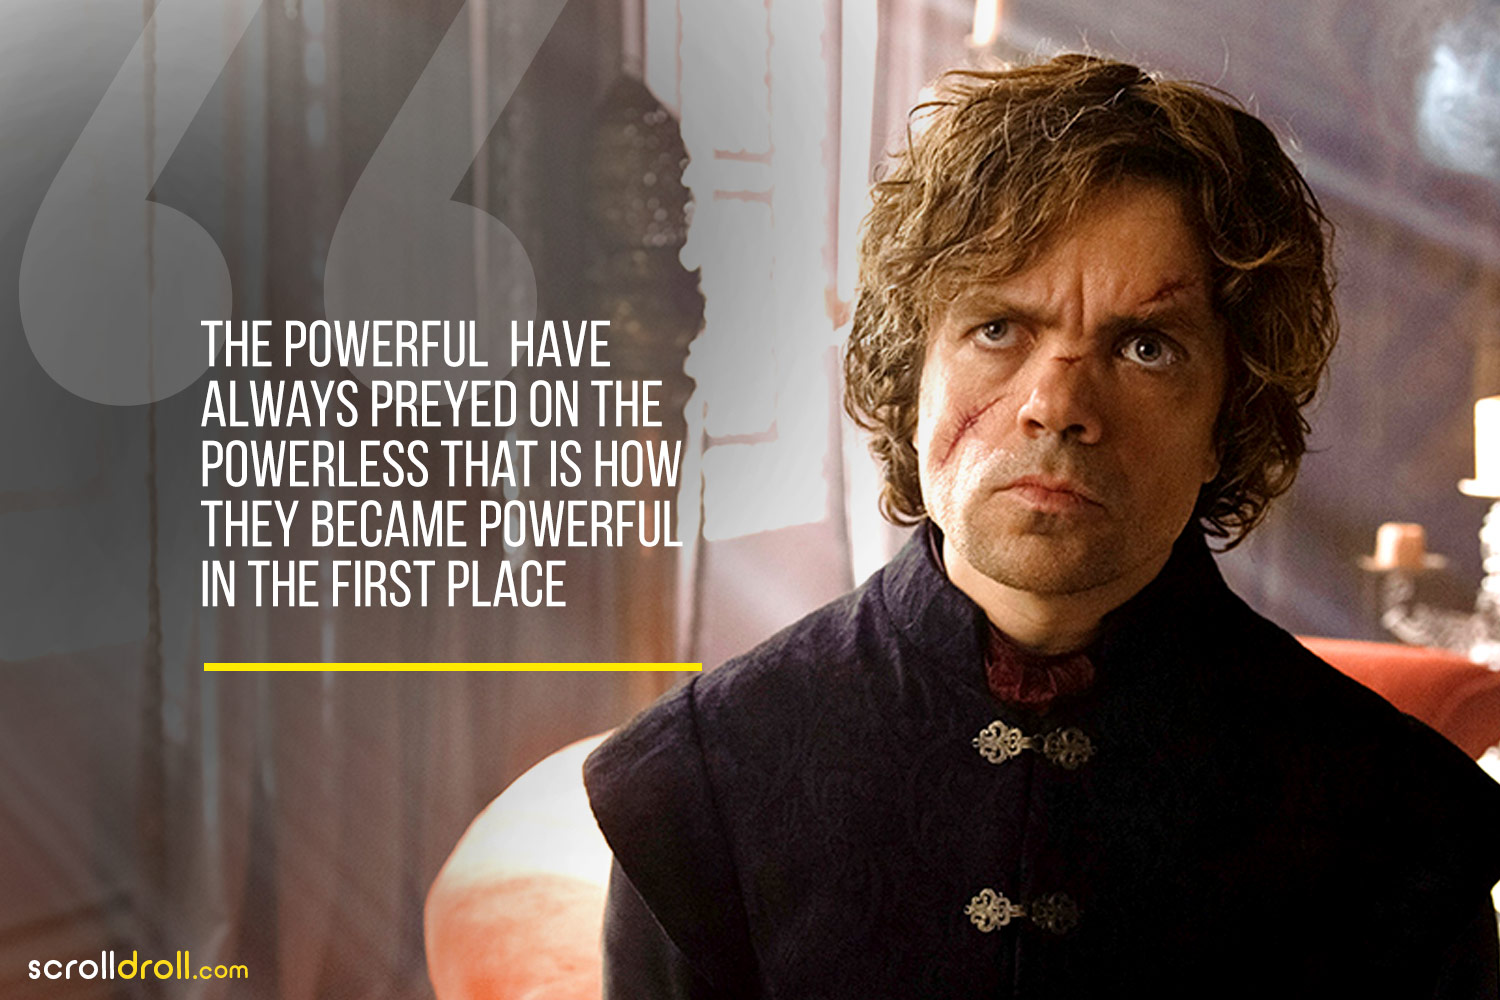 Tyrion-The Powerful have always preyed on the powerless that is how they became powerful in the place